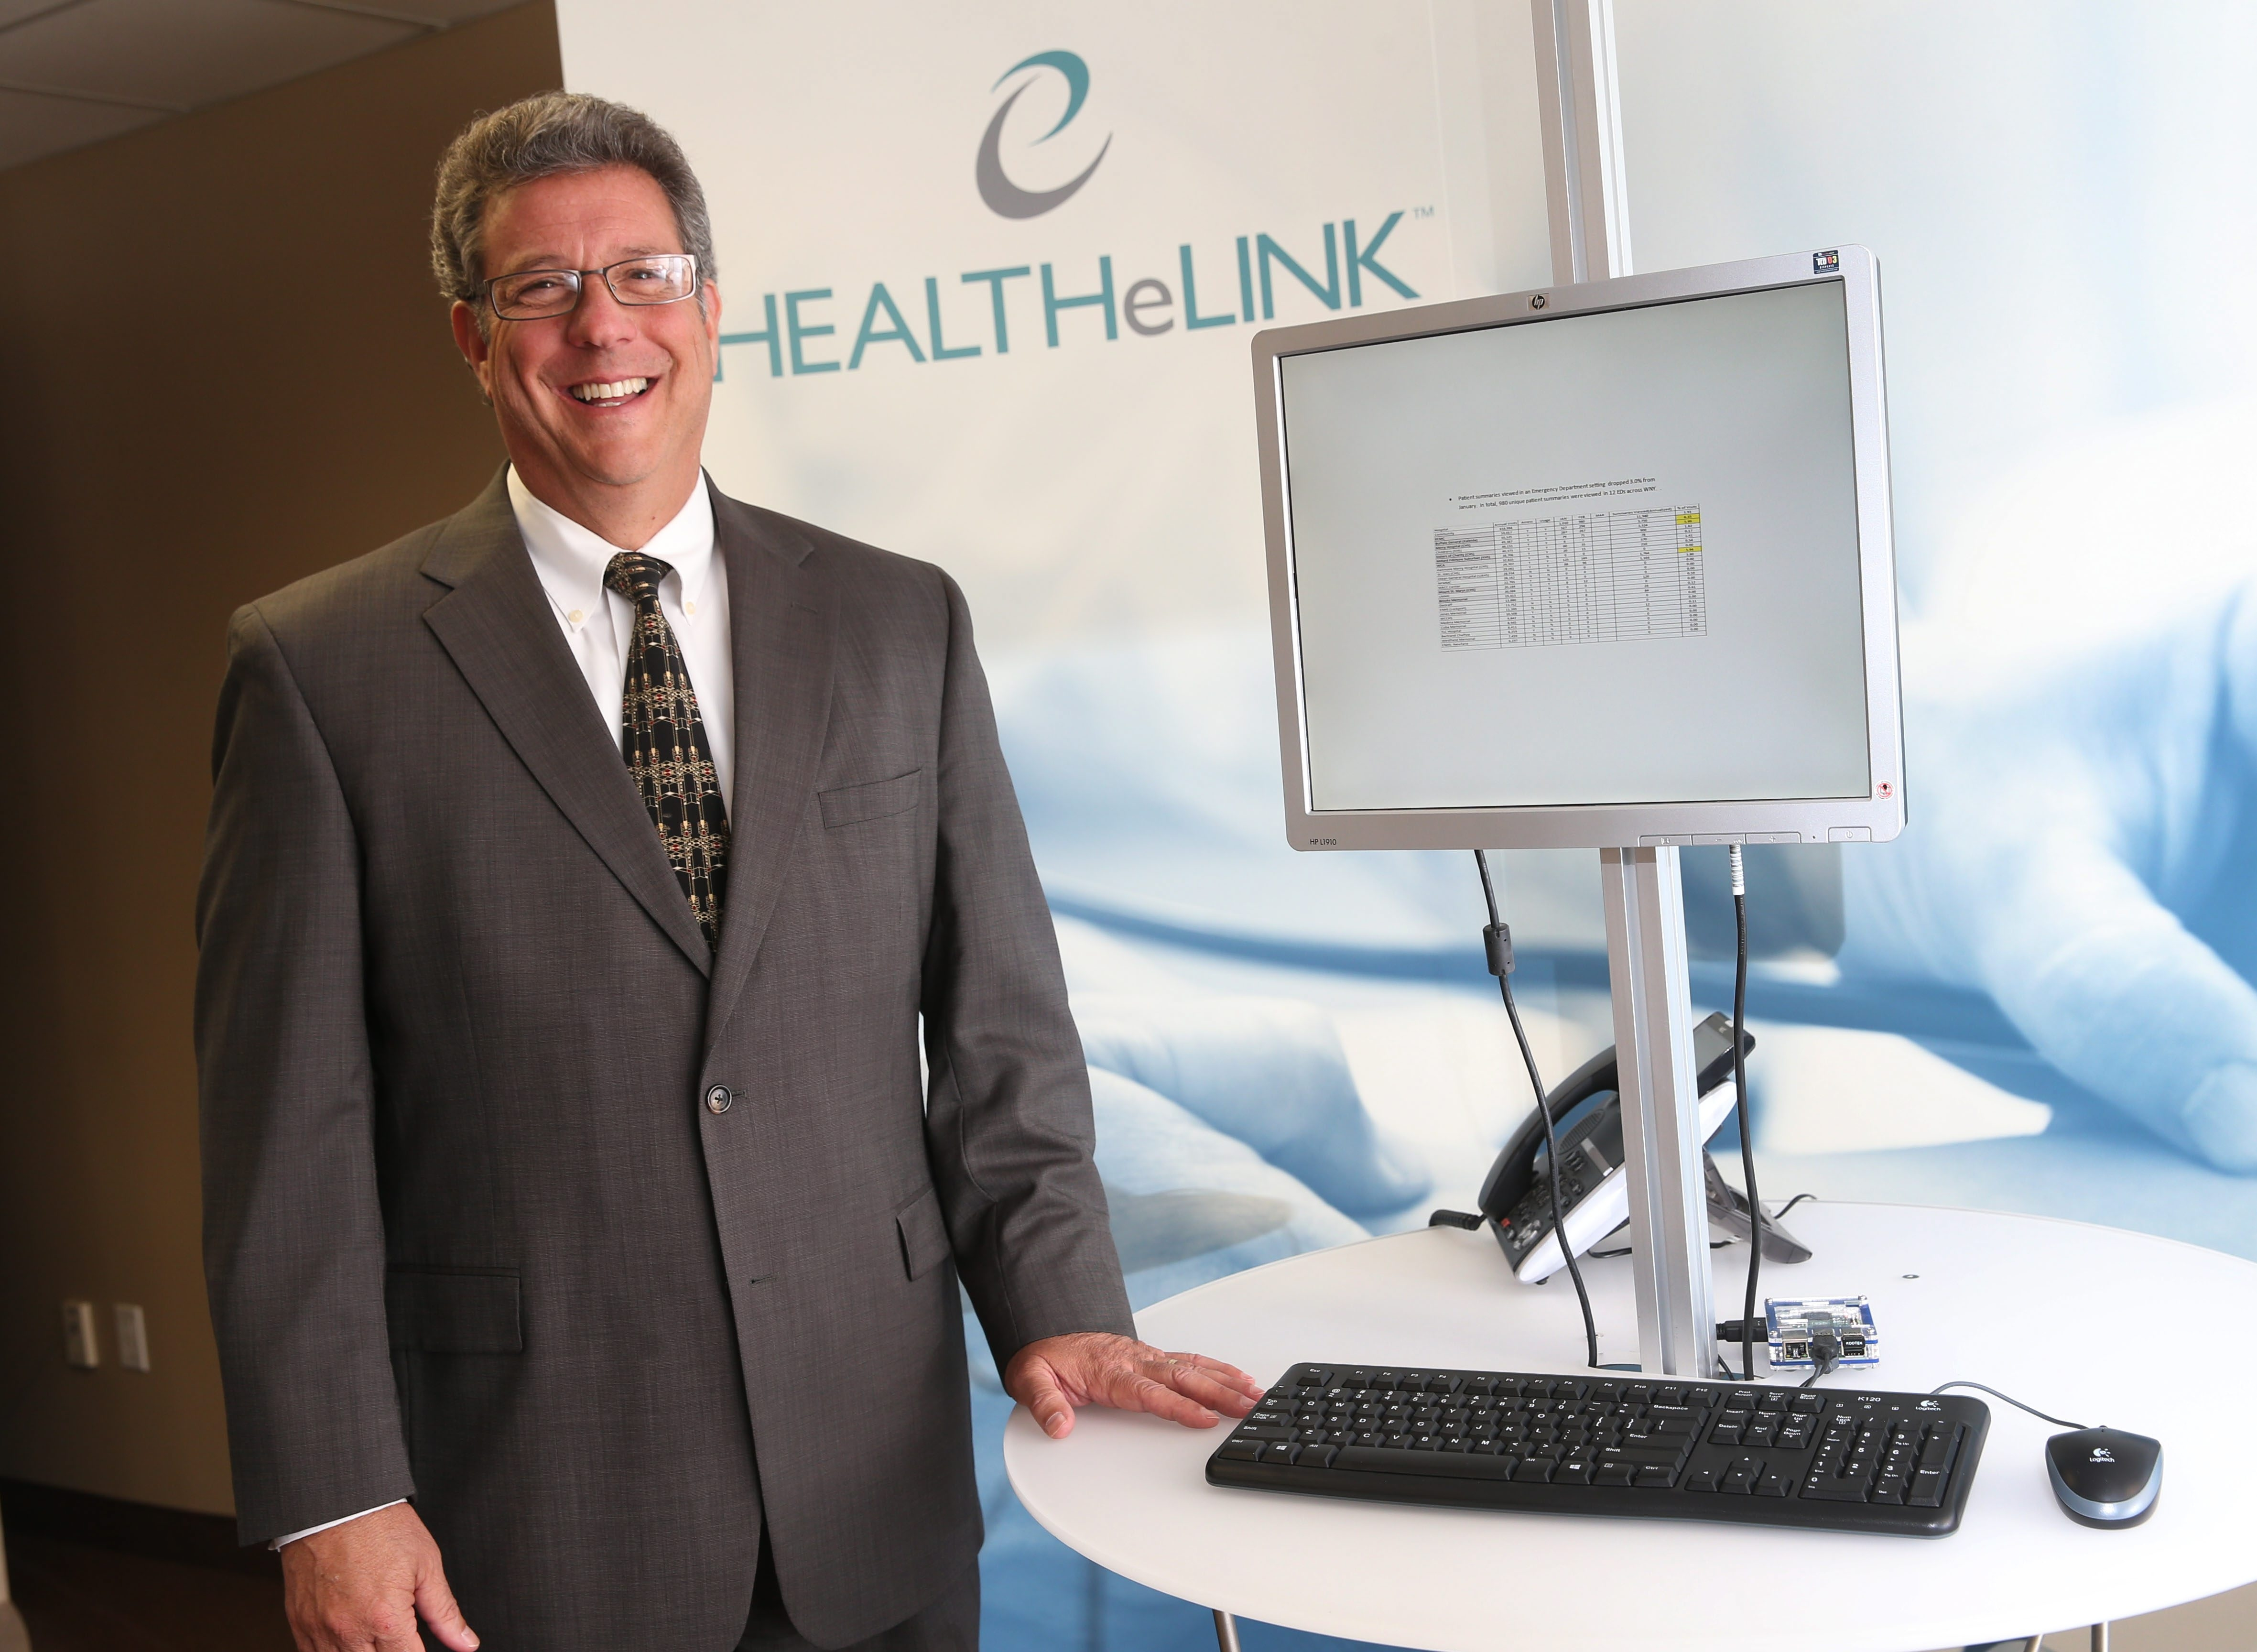 """It's kind of obvious that if doctors have better information, they can make better decisions."" – Daniel Porreca, executive director of HEALTHeLINK"